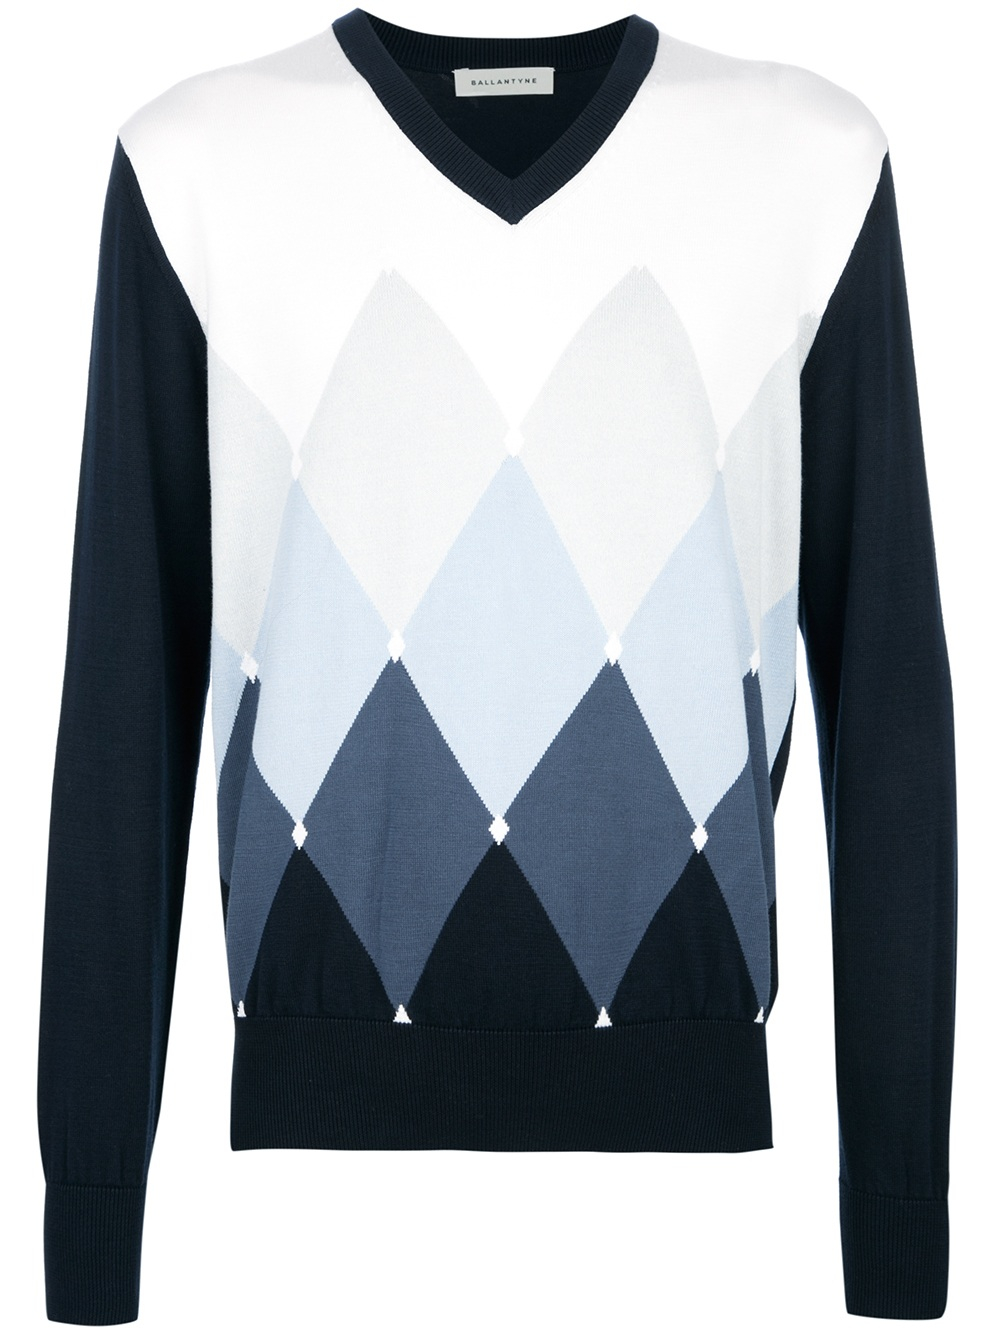 Cheapest Cheap Online dyamond sweater Ballantyne For Sale Wholesale Price Discount Official Site Cheap Huge Surprise AoiC4vSd